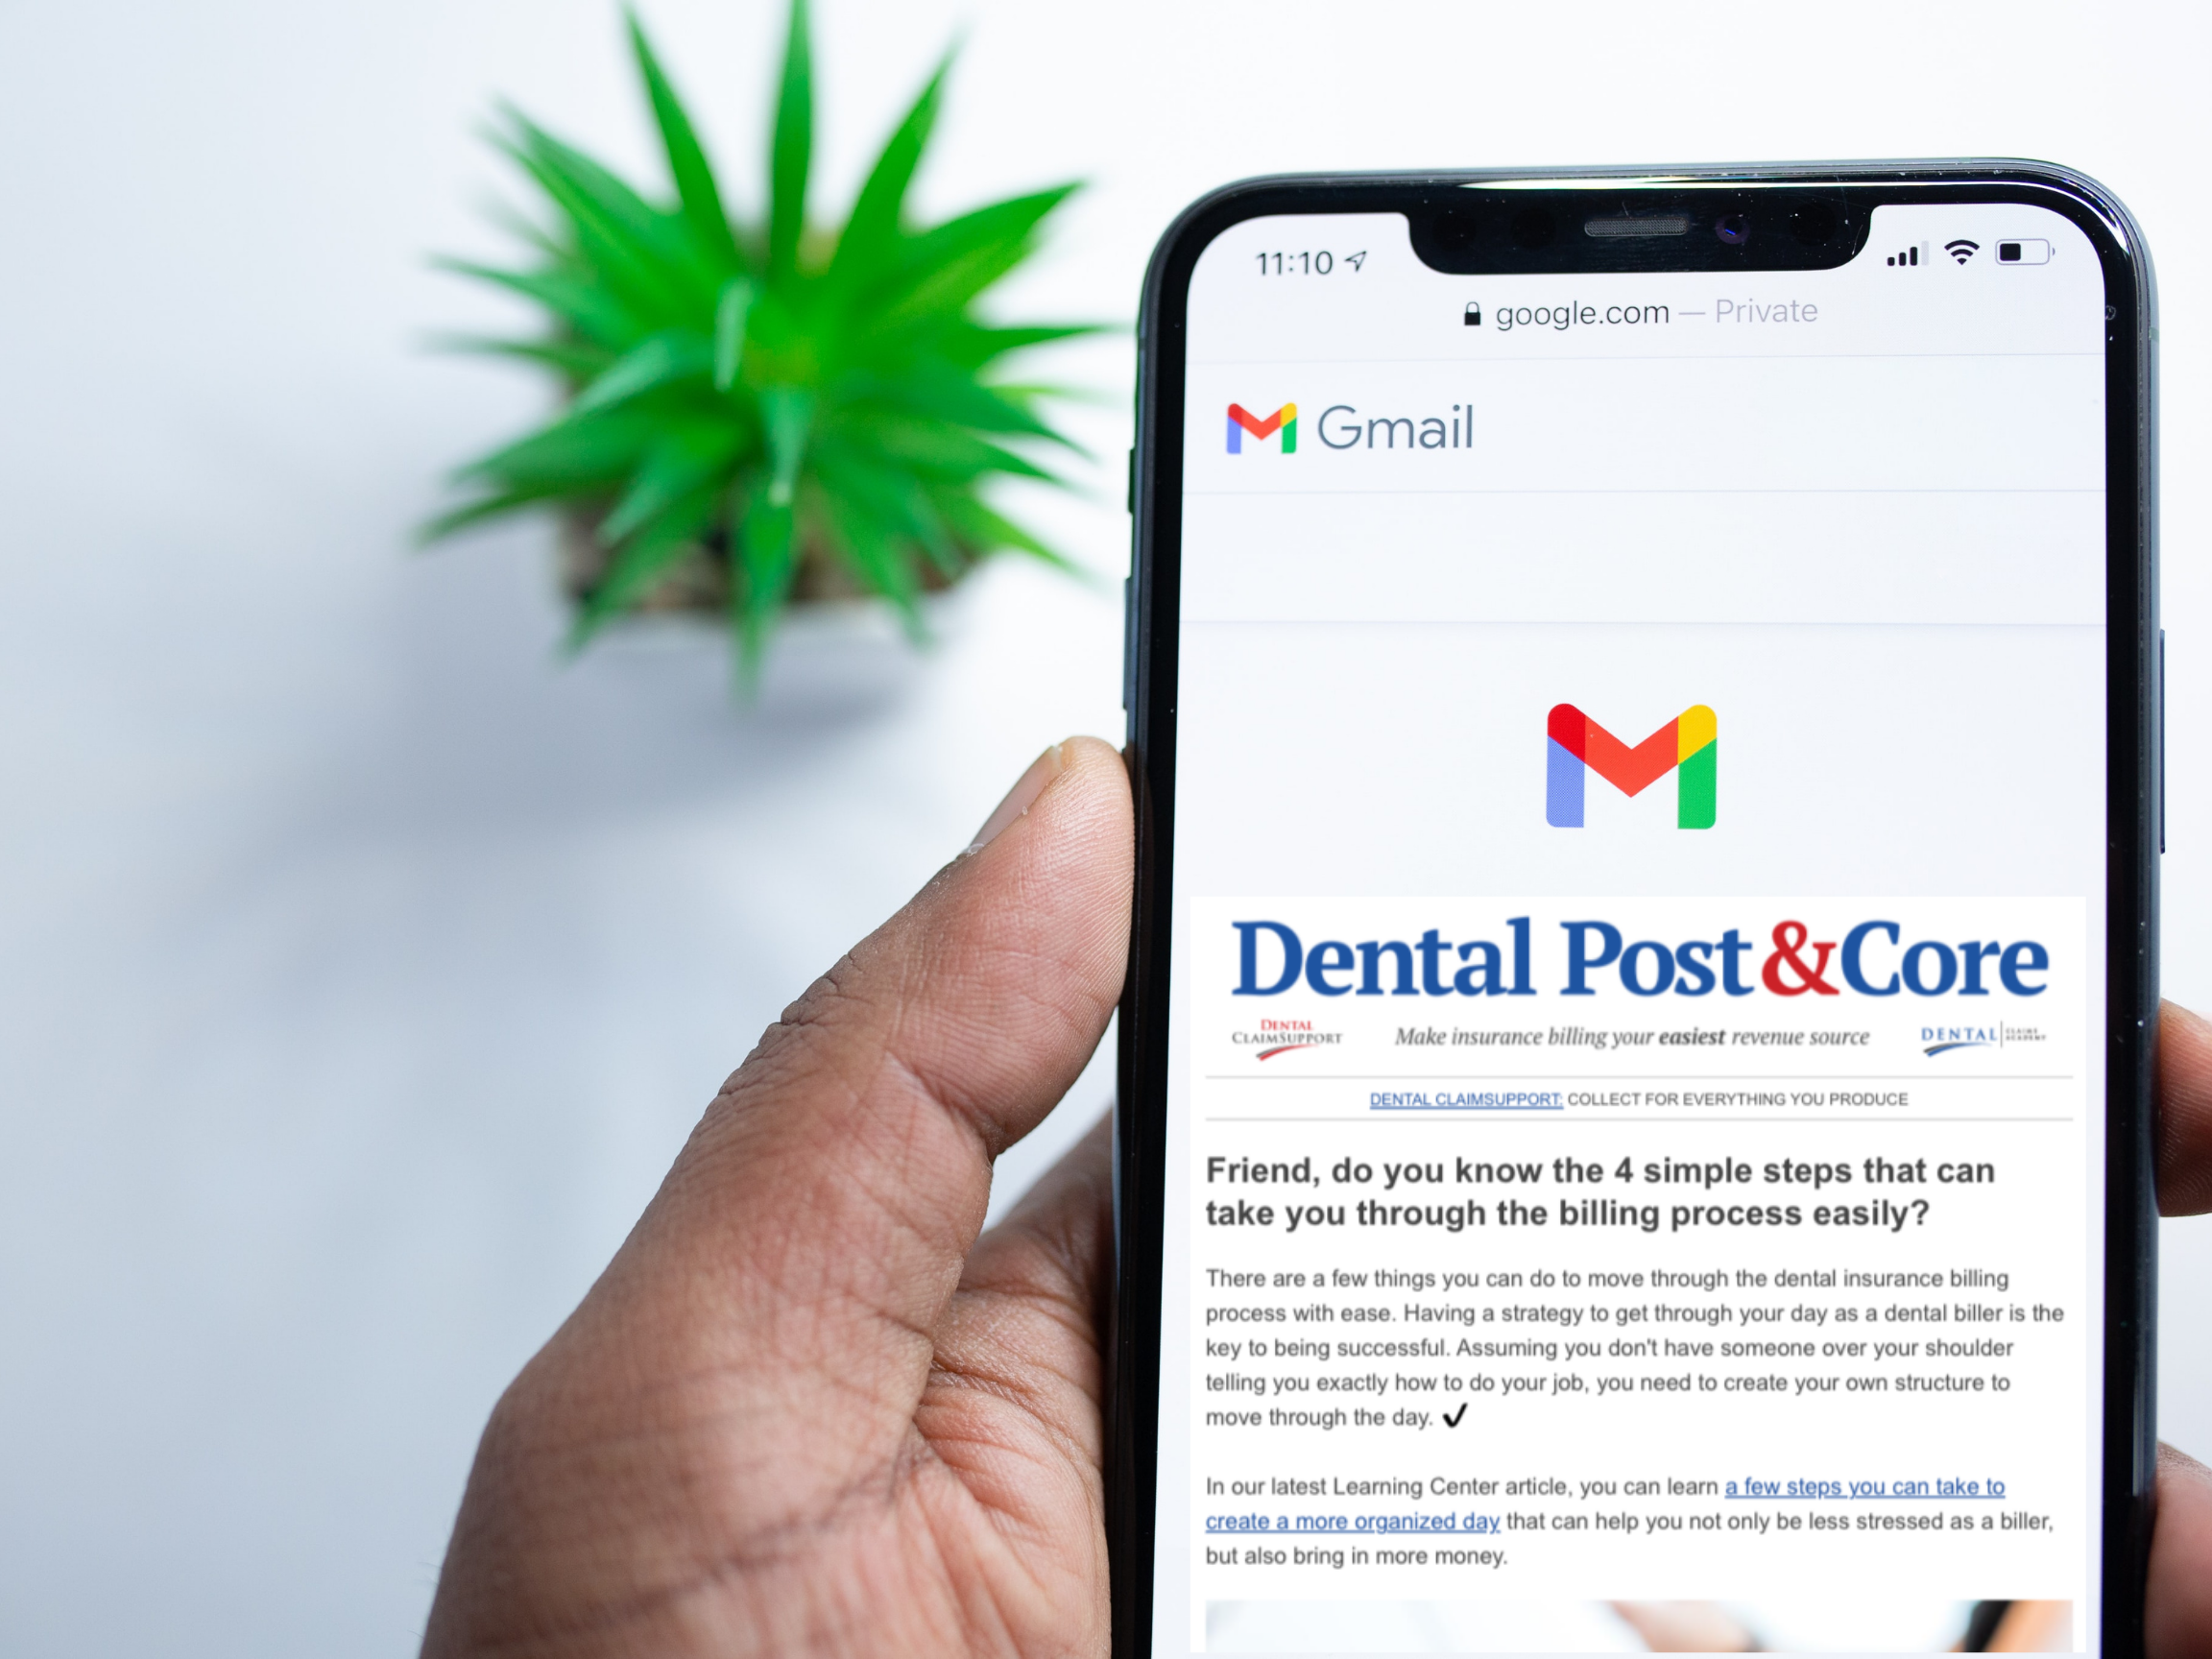 3 reasons you'll build a better dental practice by subscribing to the Dental Post & Core